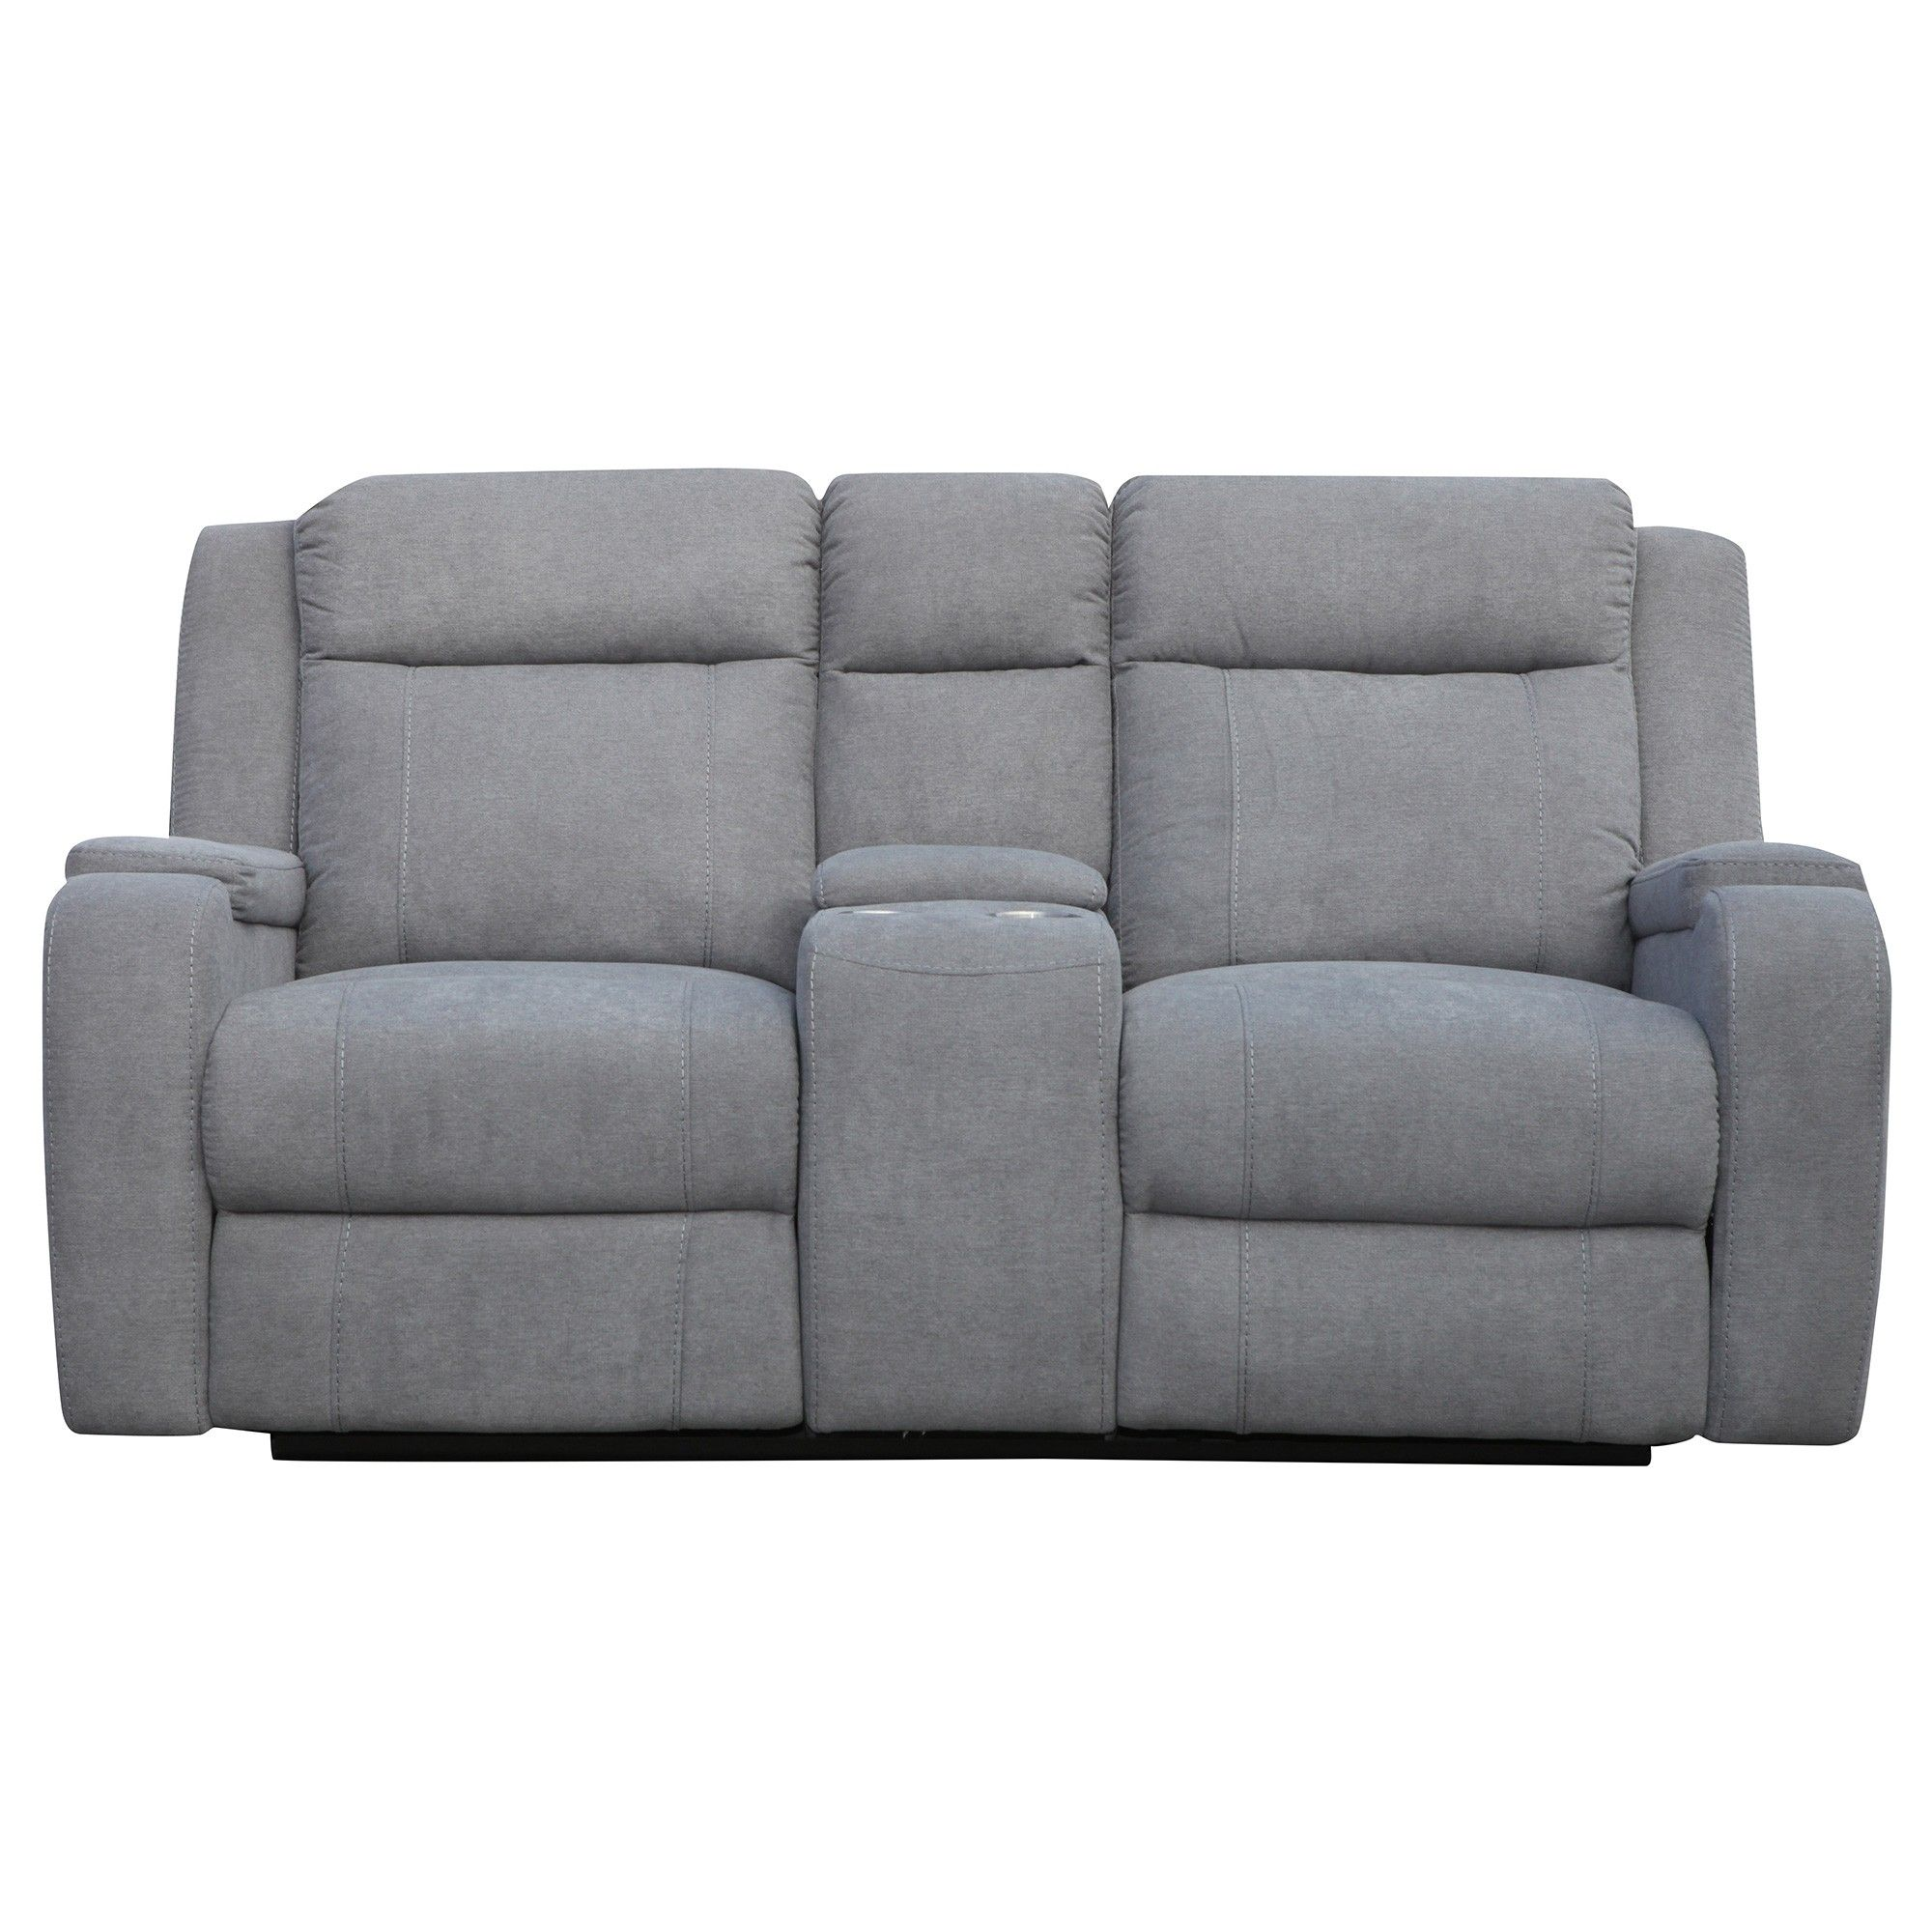 Renton 2 Seater Linen Fabric Recliner Sofa Storm With Images